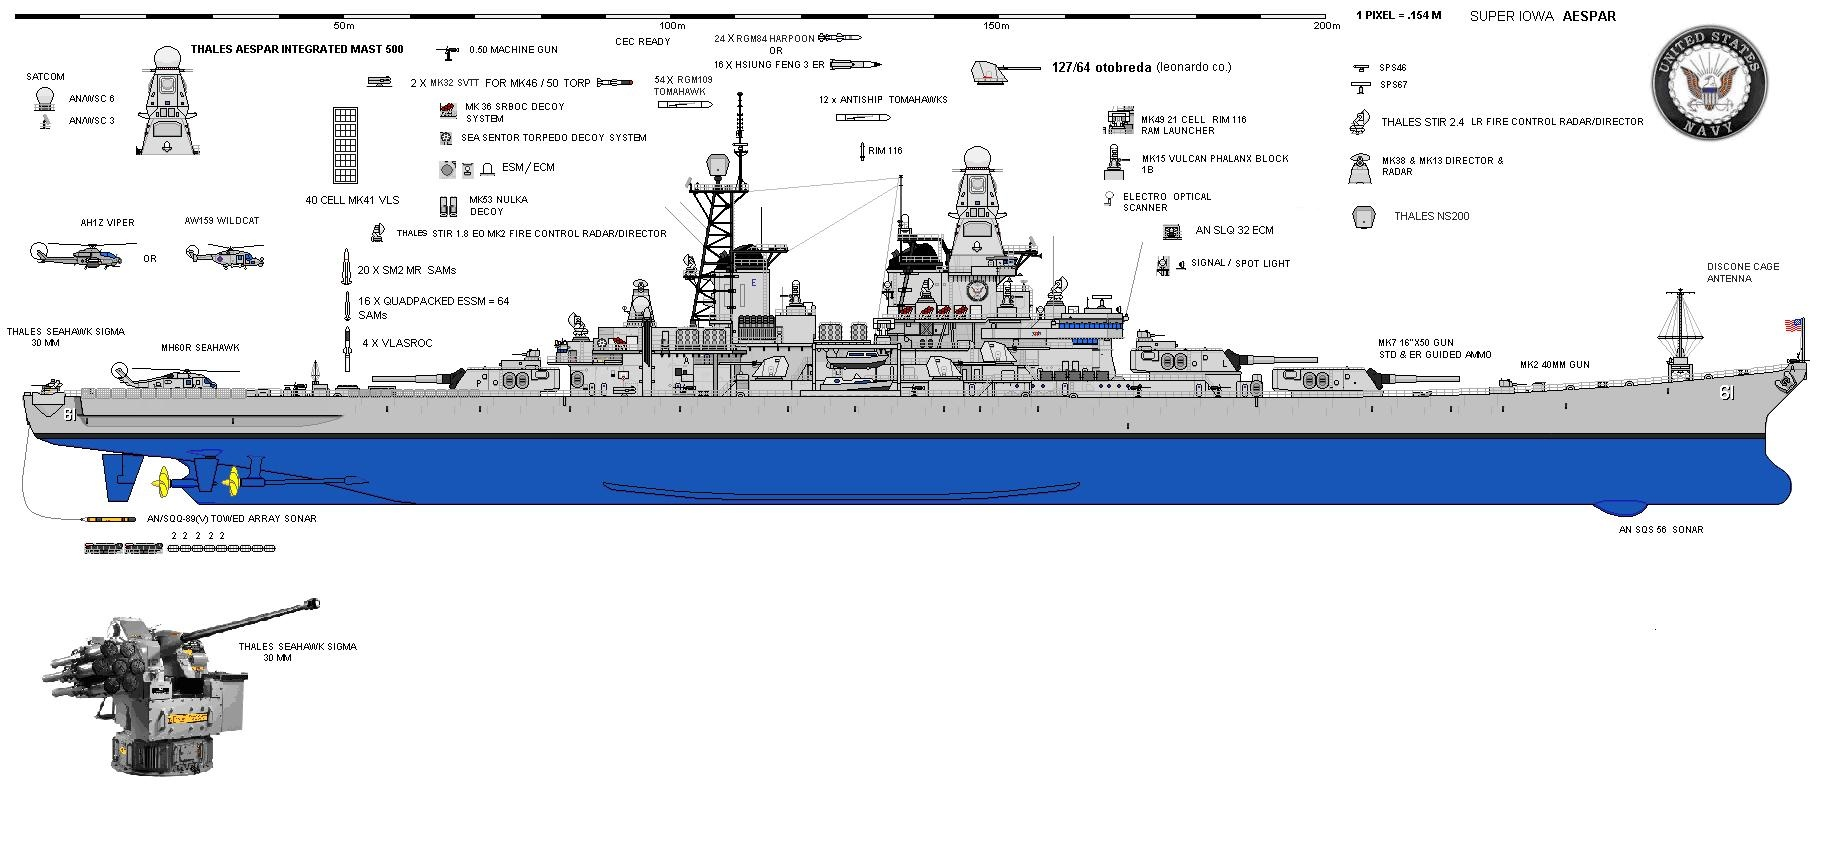 hight resolution of  complete with an aespar mast from thales 10 100 mile sabot ergms from italy s leonardo oto melara for the 16 guns even gutting the ship getting